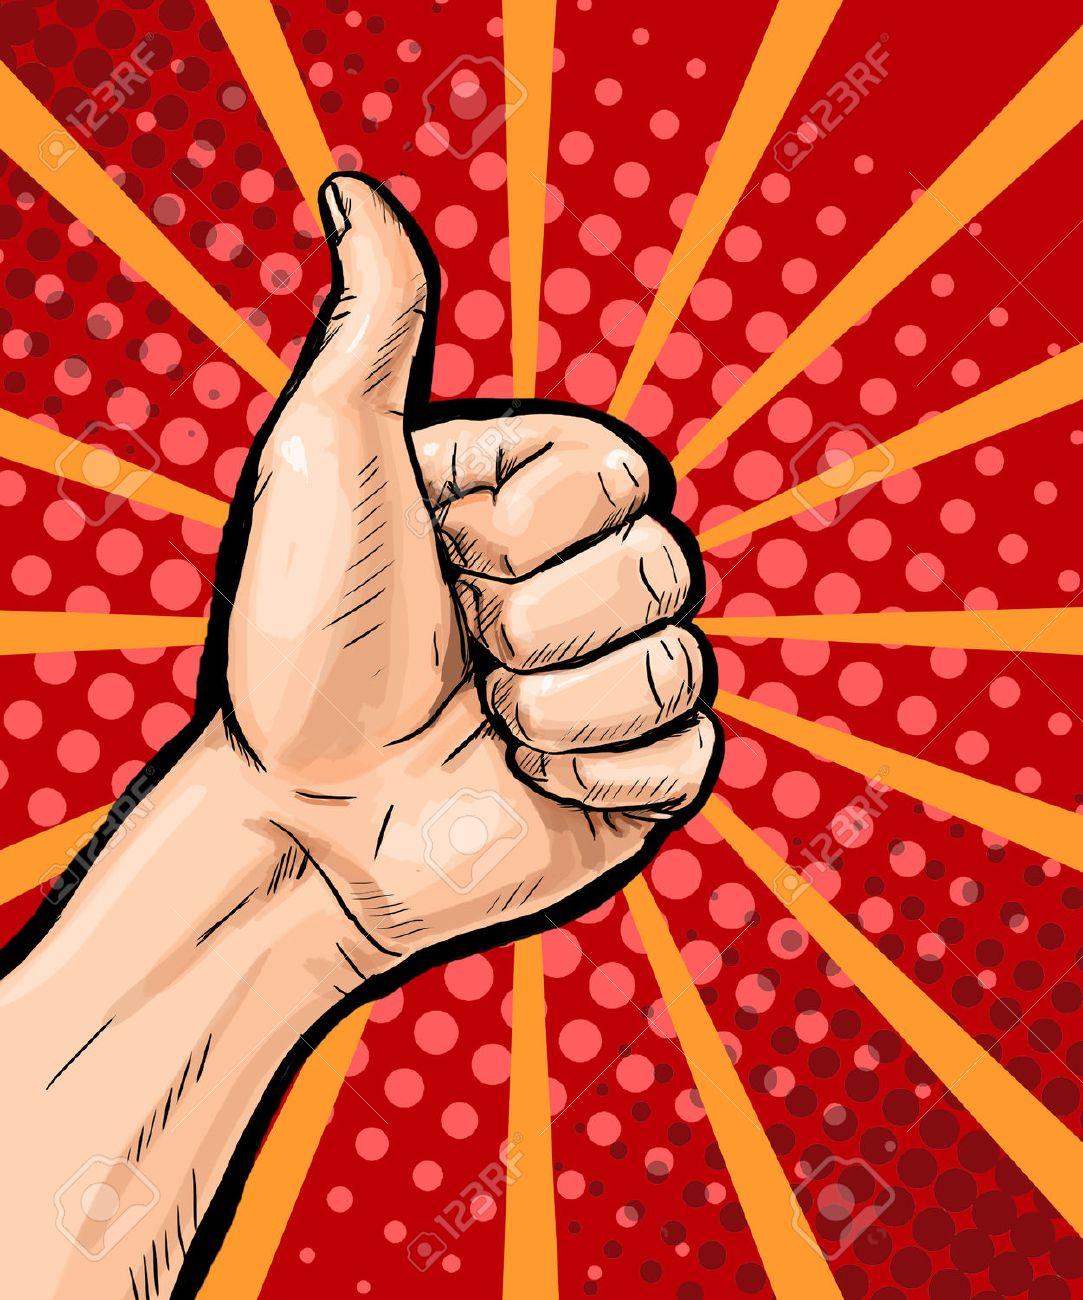 Closeup Of Male Hand Showing Thumbs Up Sign On Pop Art Background Poster